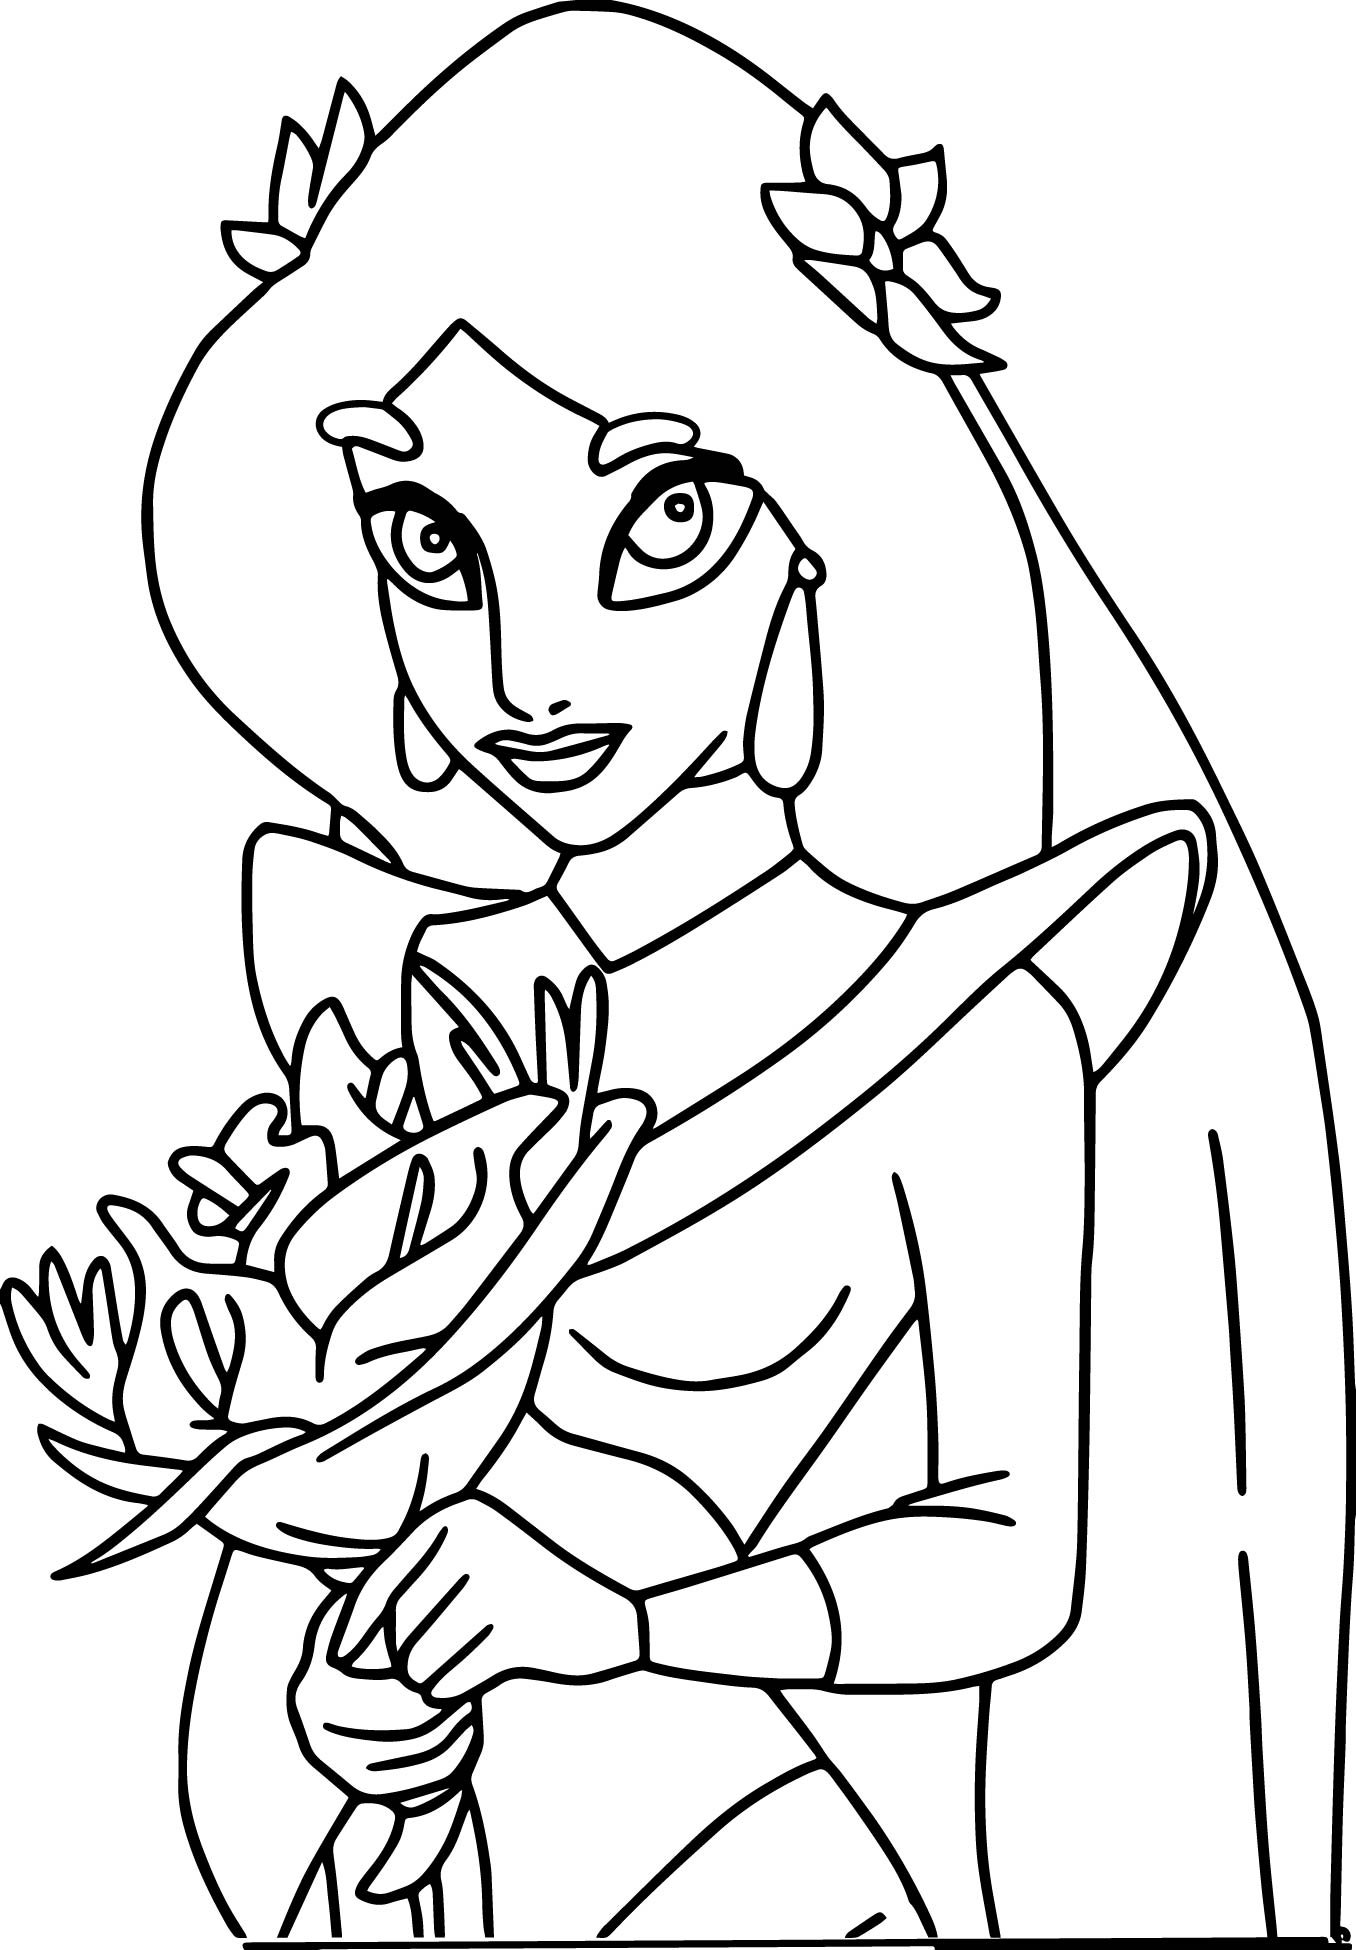 aladdin and the king of thieves coloring pages wecoloringpage